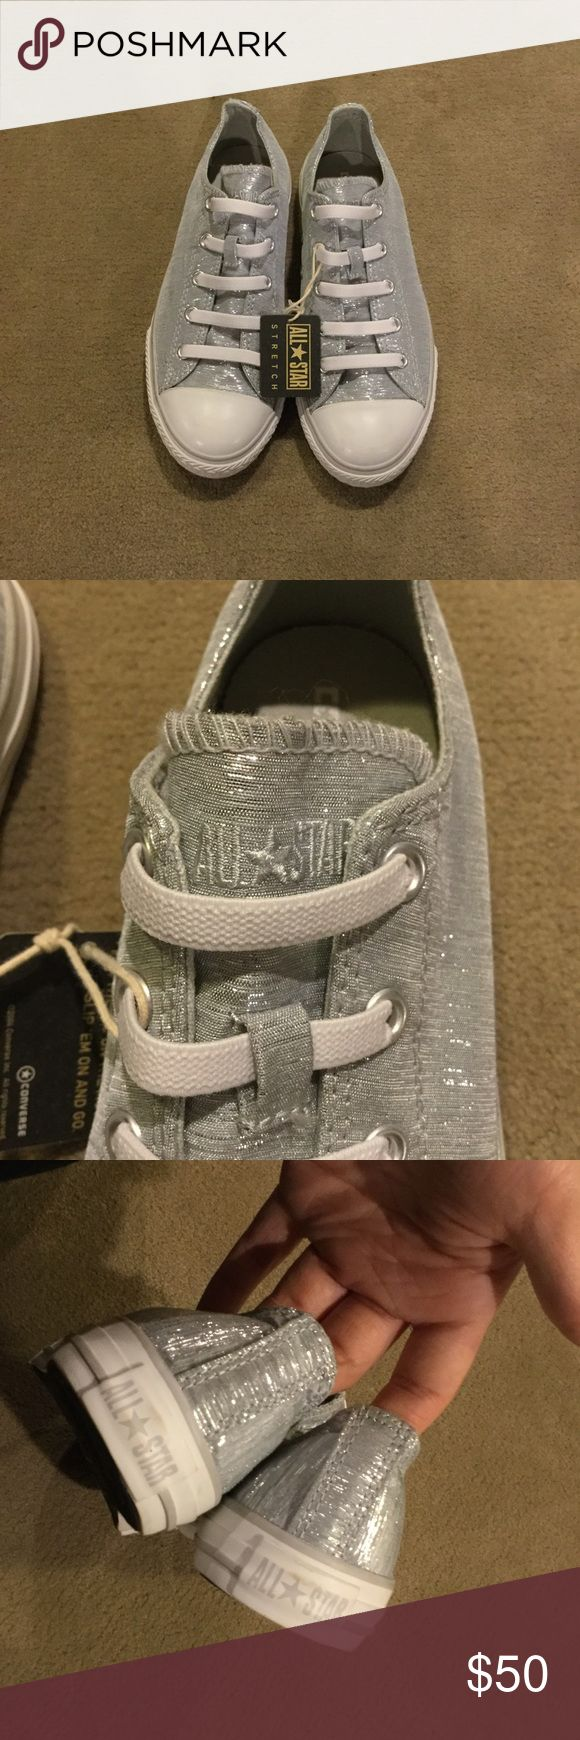 Silver Glitter Converse Slip Ons New with tag no box ; never worn ; sole says size 3 Converse Shoes Sneakers